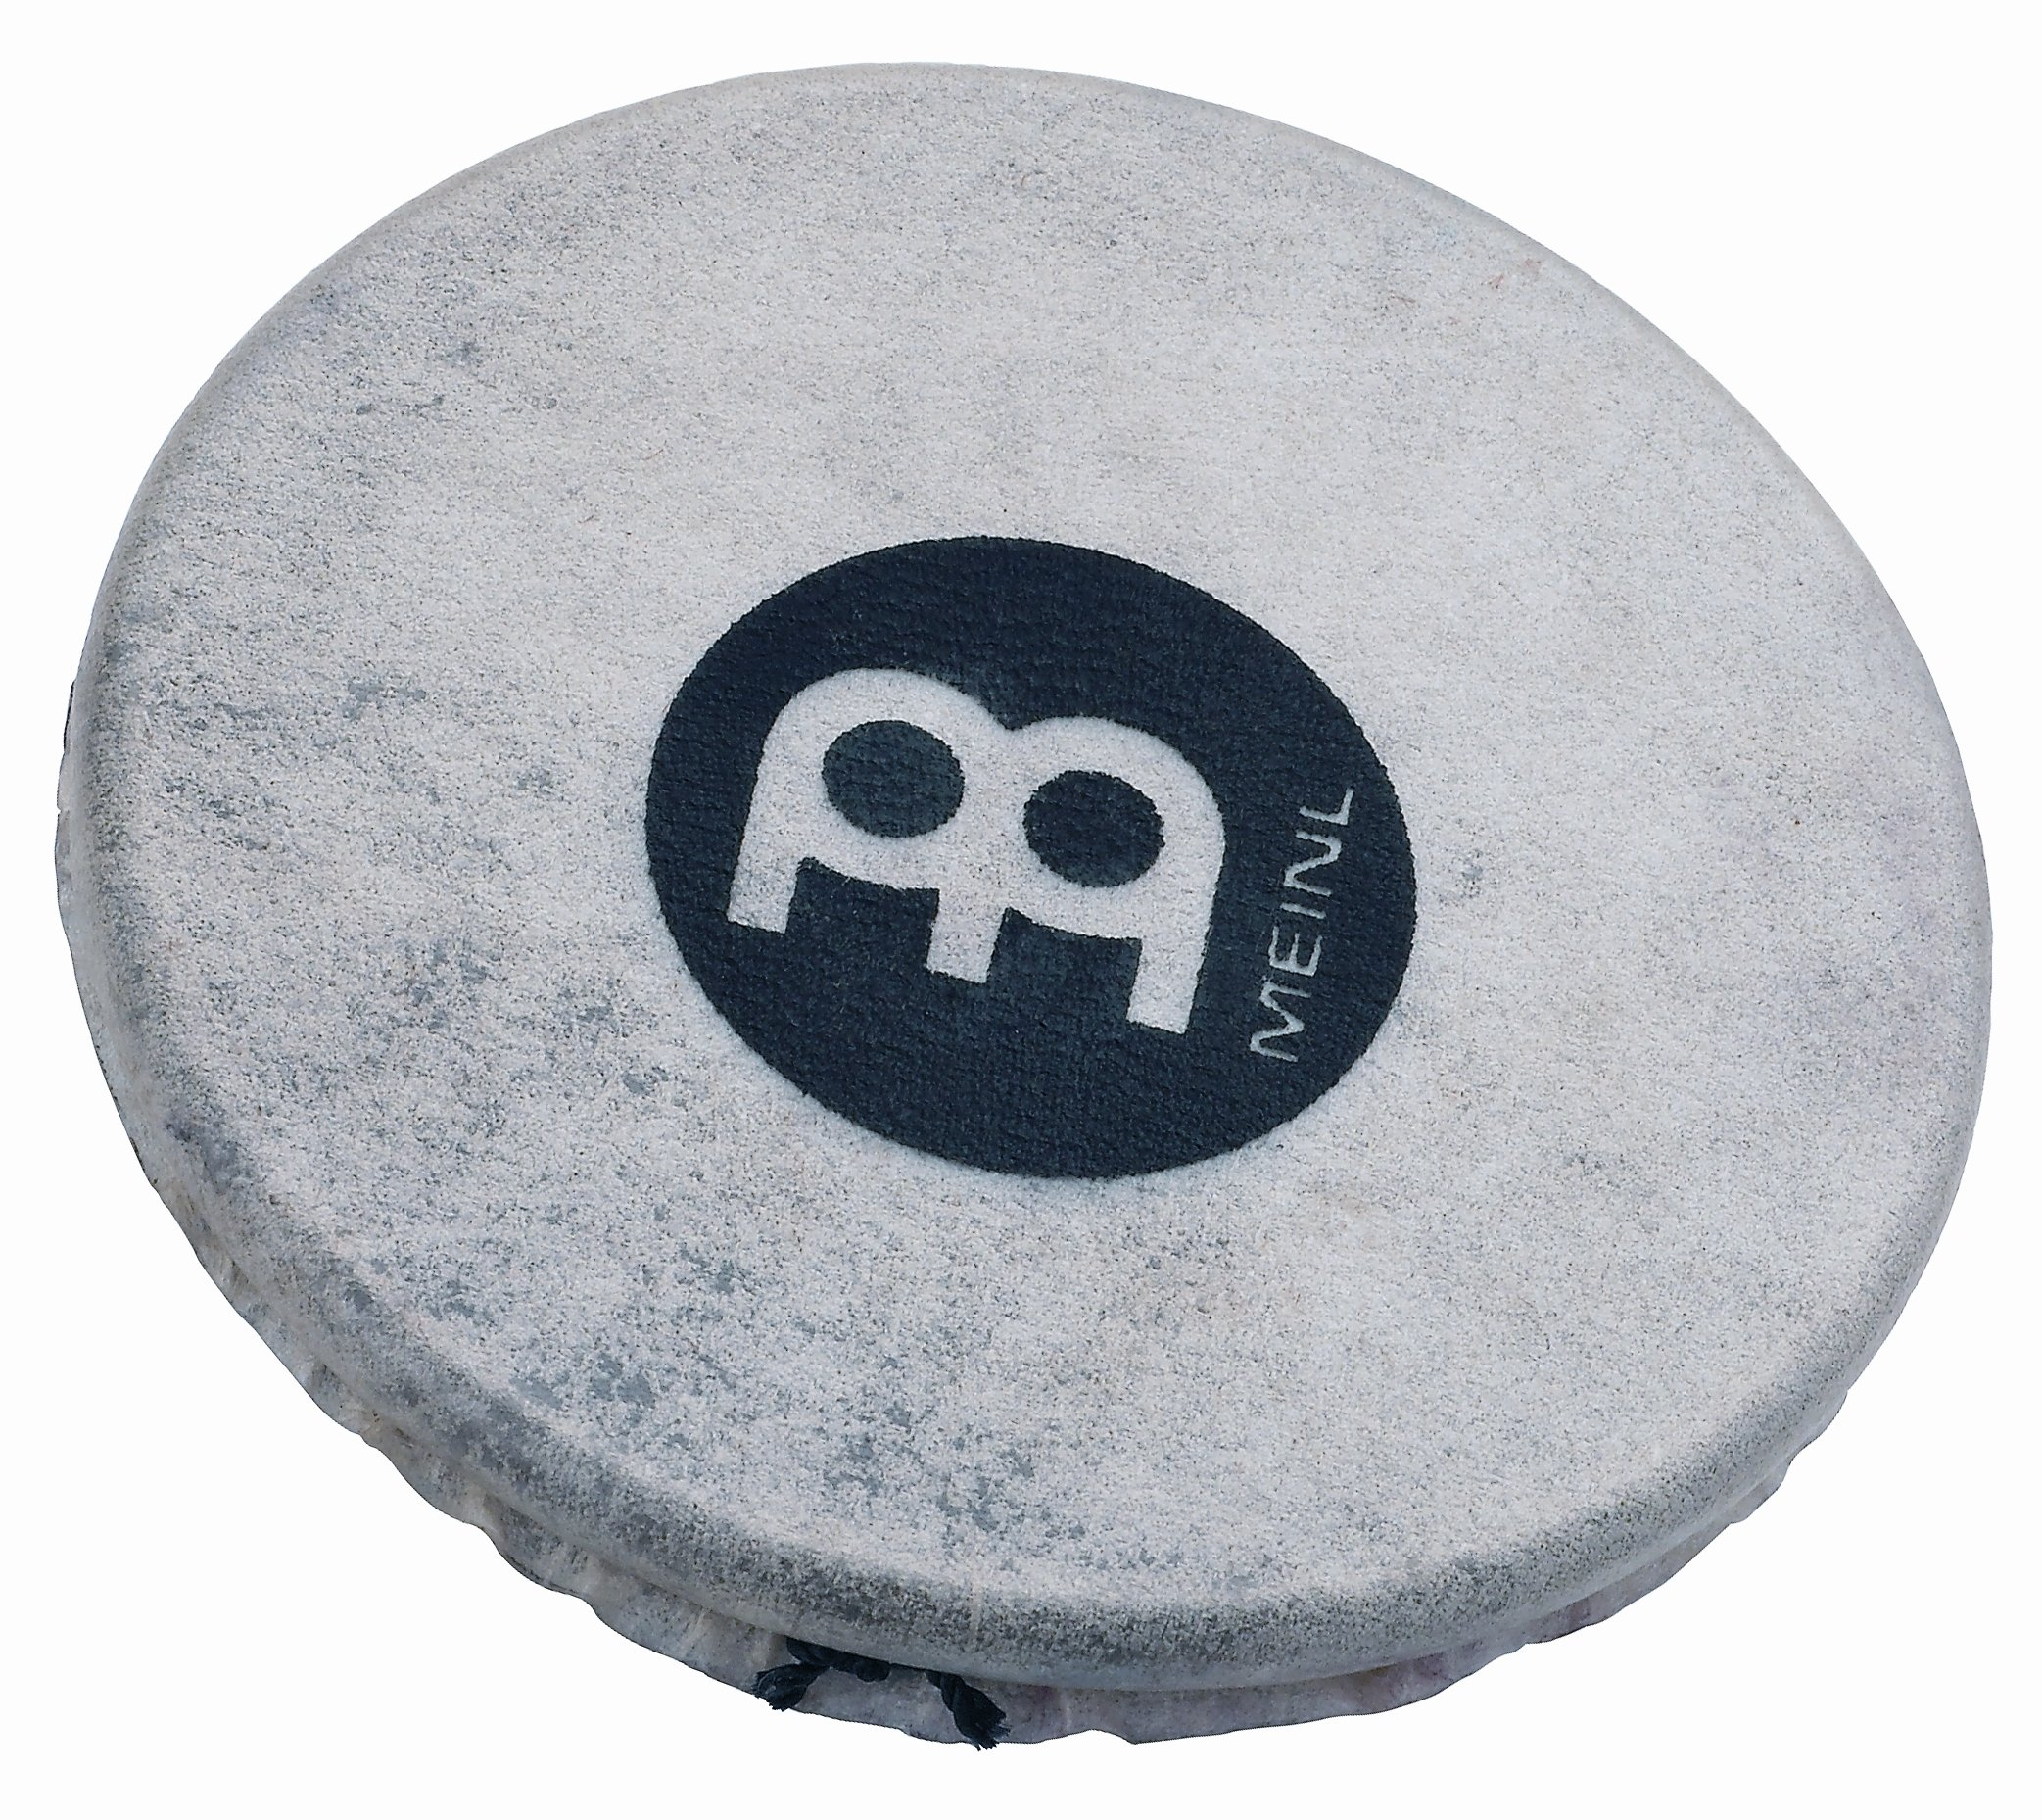 Meinl Percussion SH18 Headed Spark Shaker, Steel with Goat Skin Head by Meinl Percussion